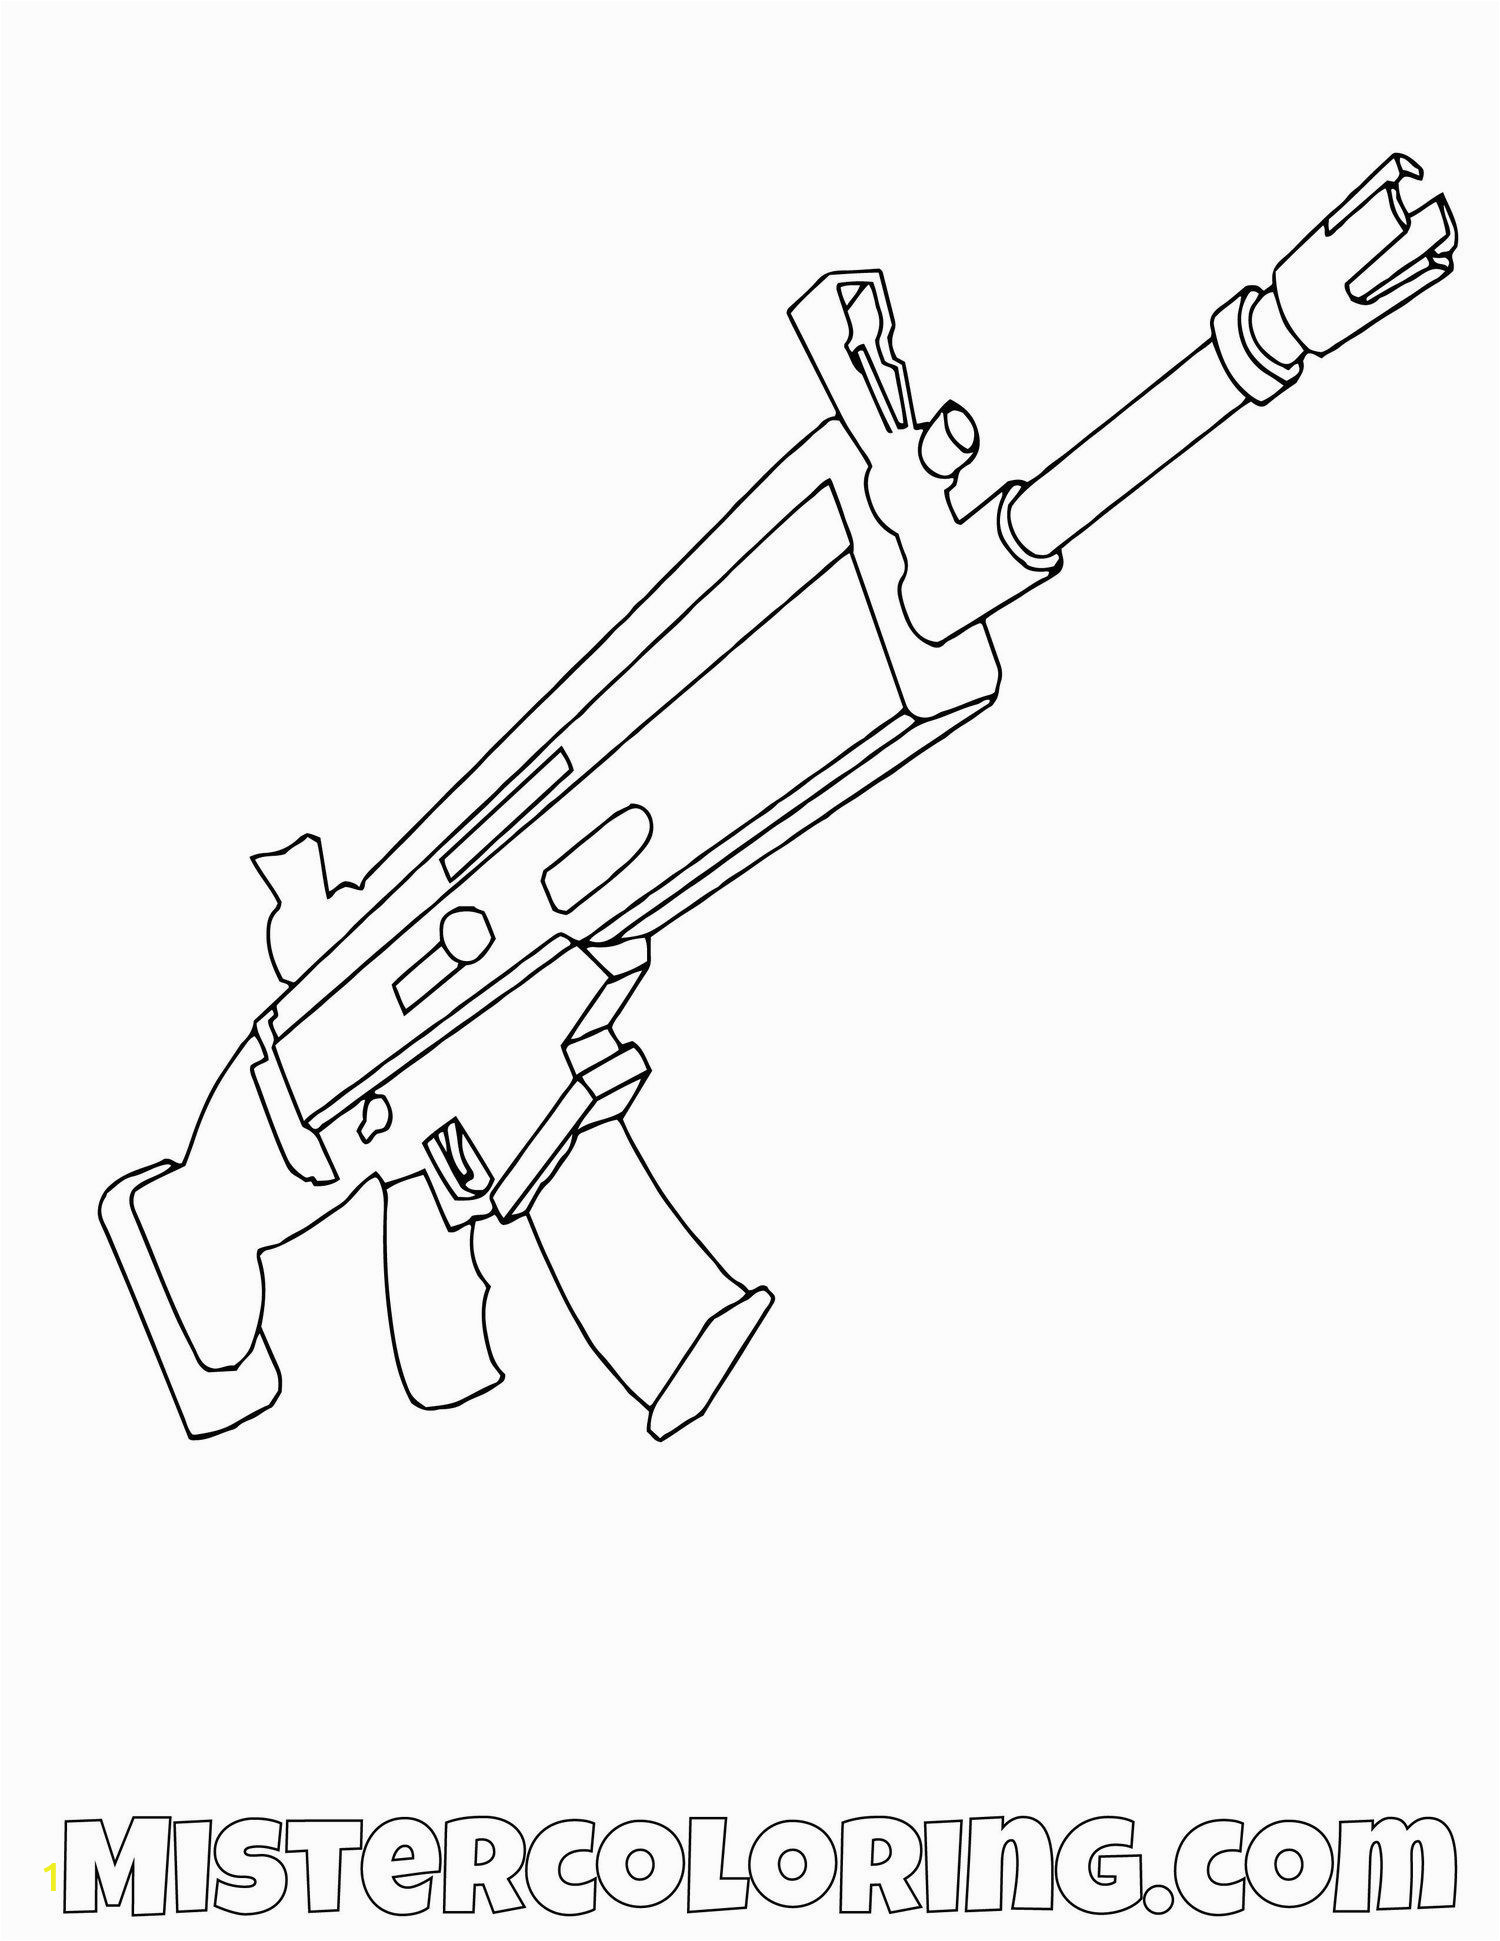 Fortnite Scar Coloring Page Scar fortnite Coloring Page